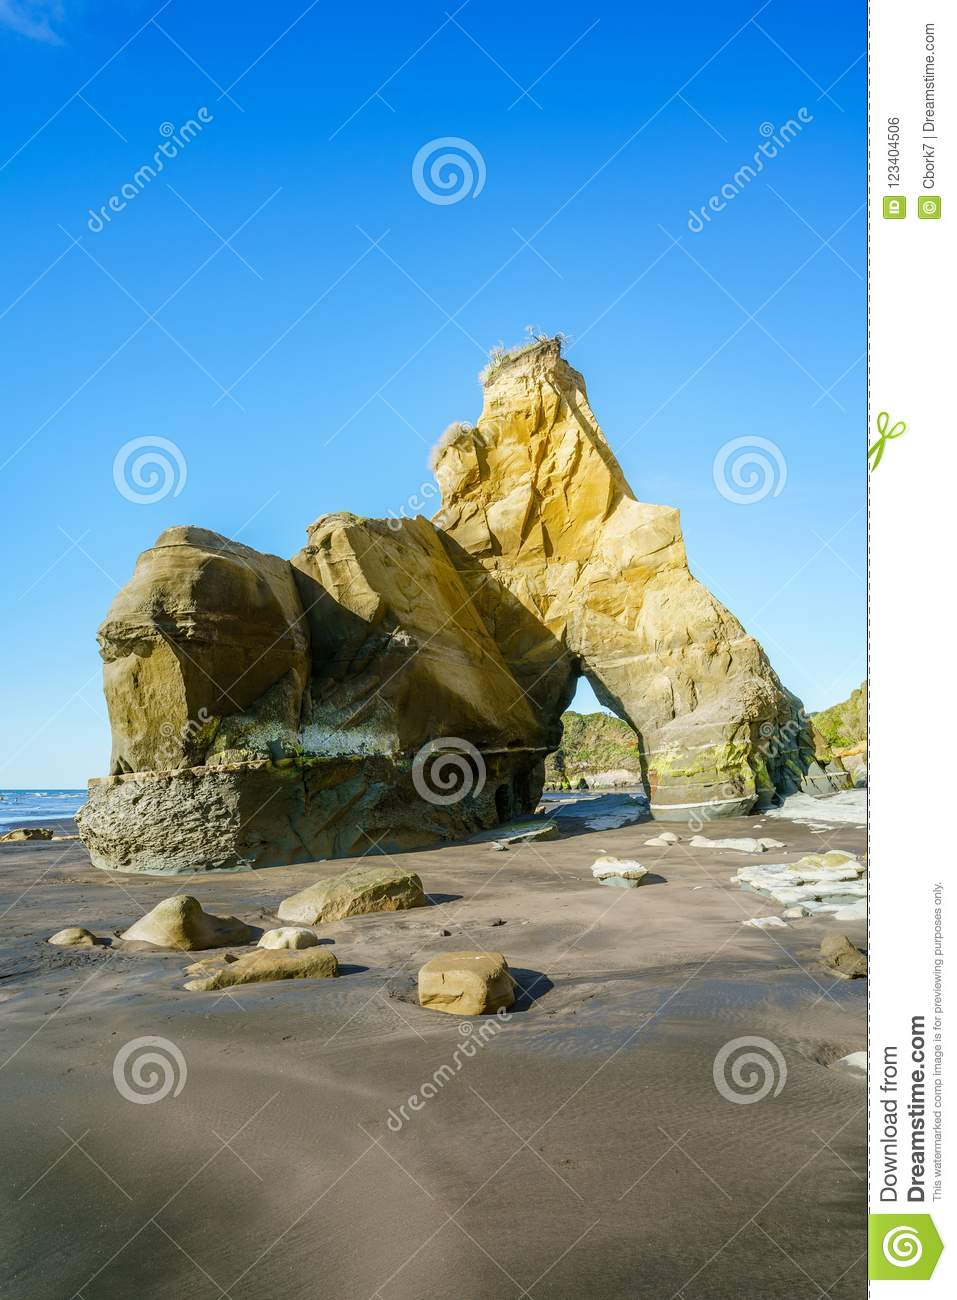 on the beach 3 sisters and elephant rock new zealand 56 stock